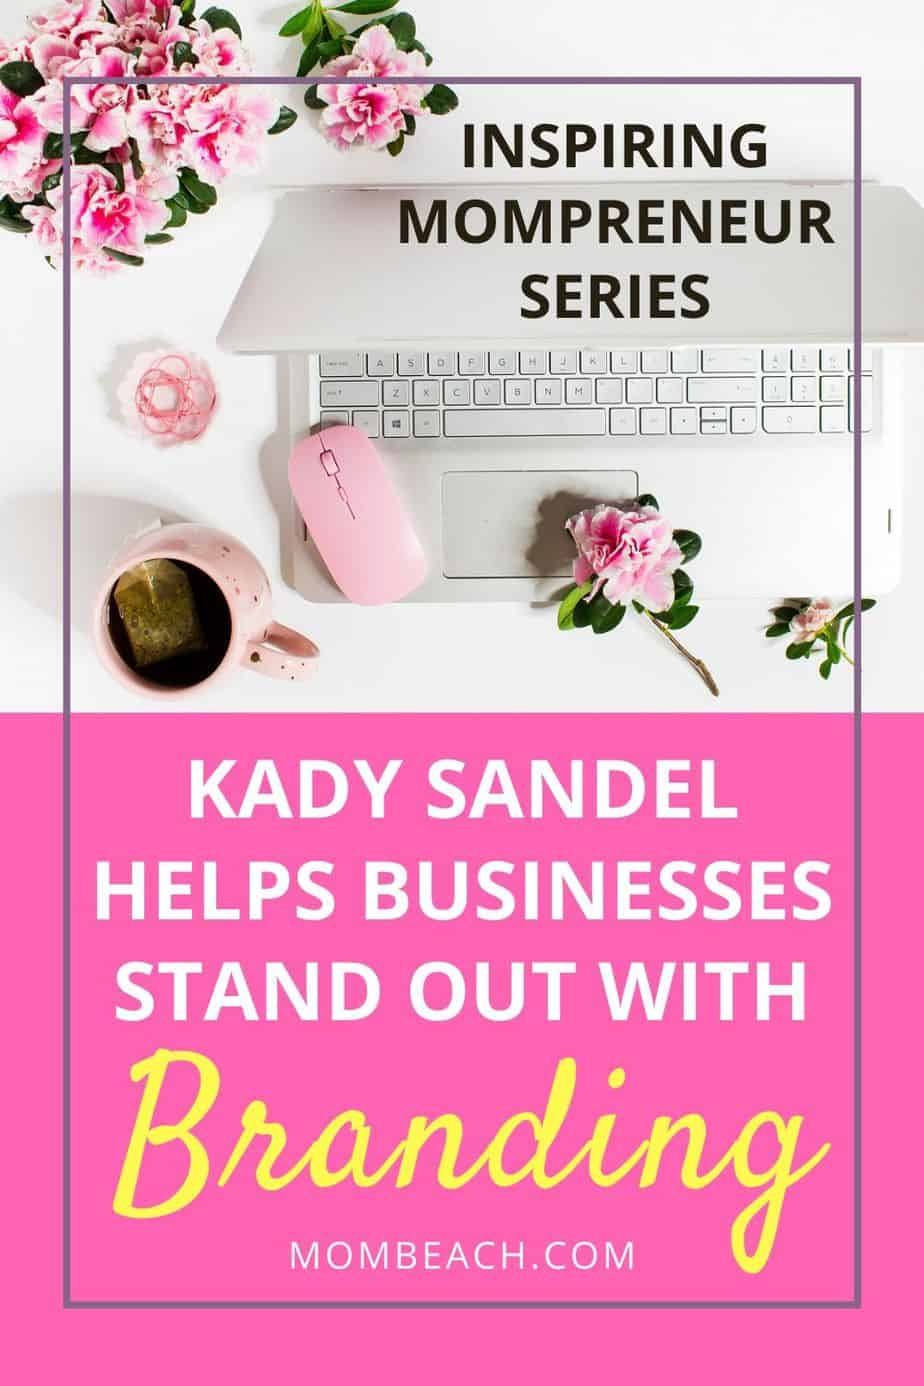 Kady Sandel is an inspiring mompreneur that is the SEO of Aventive Studio. She helps businesses stand out with branding. Check out her interview now! #mompreneur #inspiringmompreneur #businessbranding #businesses #smallbusinesses #entrepreneurship #entrepreneur